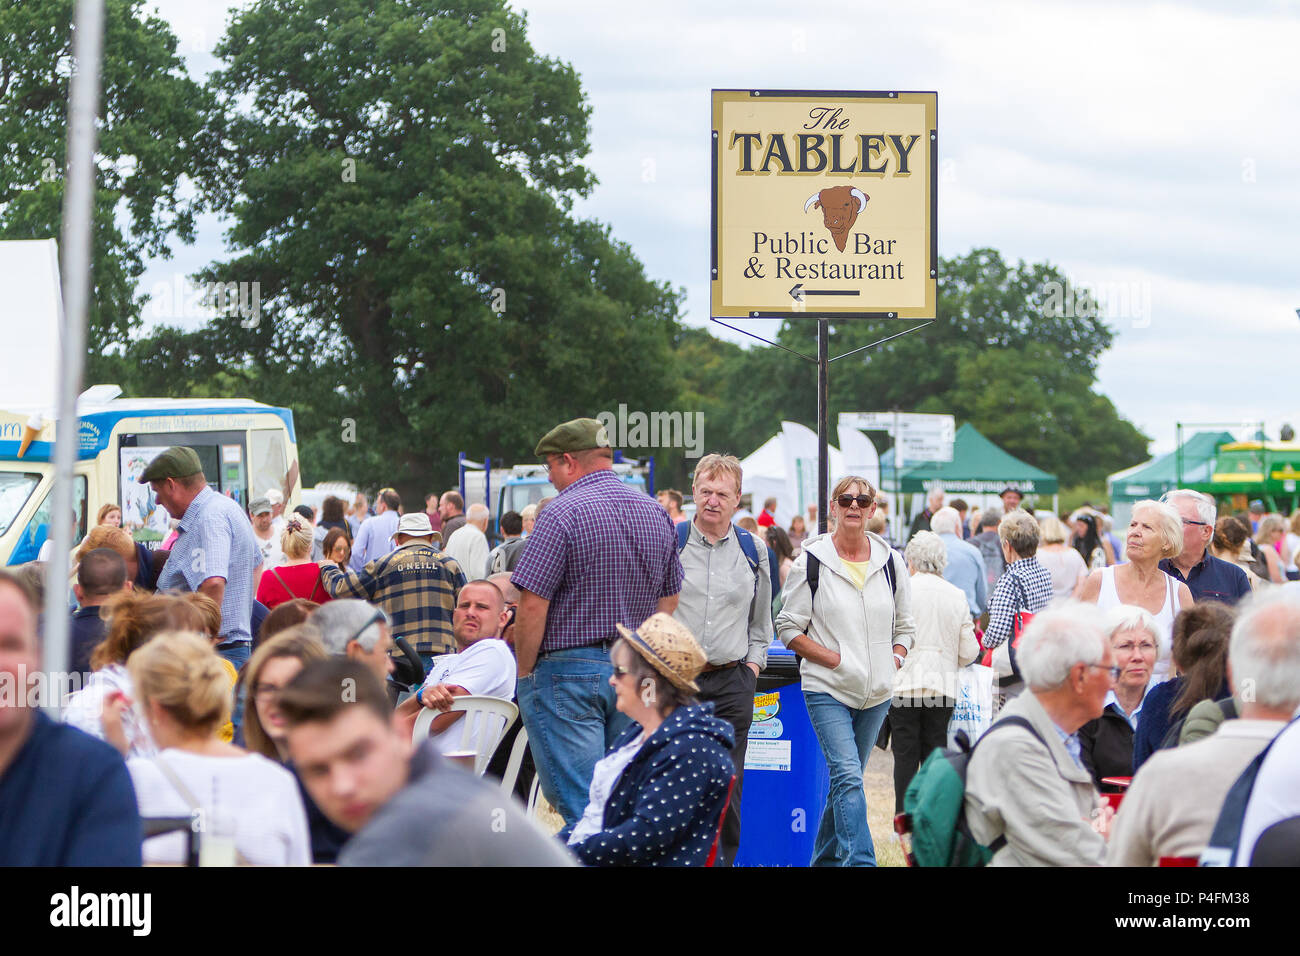 19 & 20th June 2018 - The Cheshire Showground at Clay House Farm Flittogate Lane, Knutsford hosted the 2018 Royal Cheshire County Show. The Show is ab - Stock Image